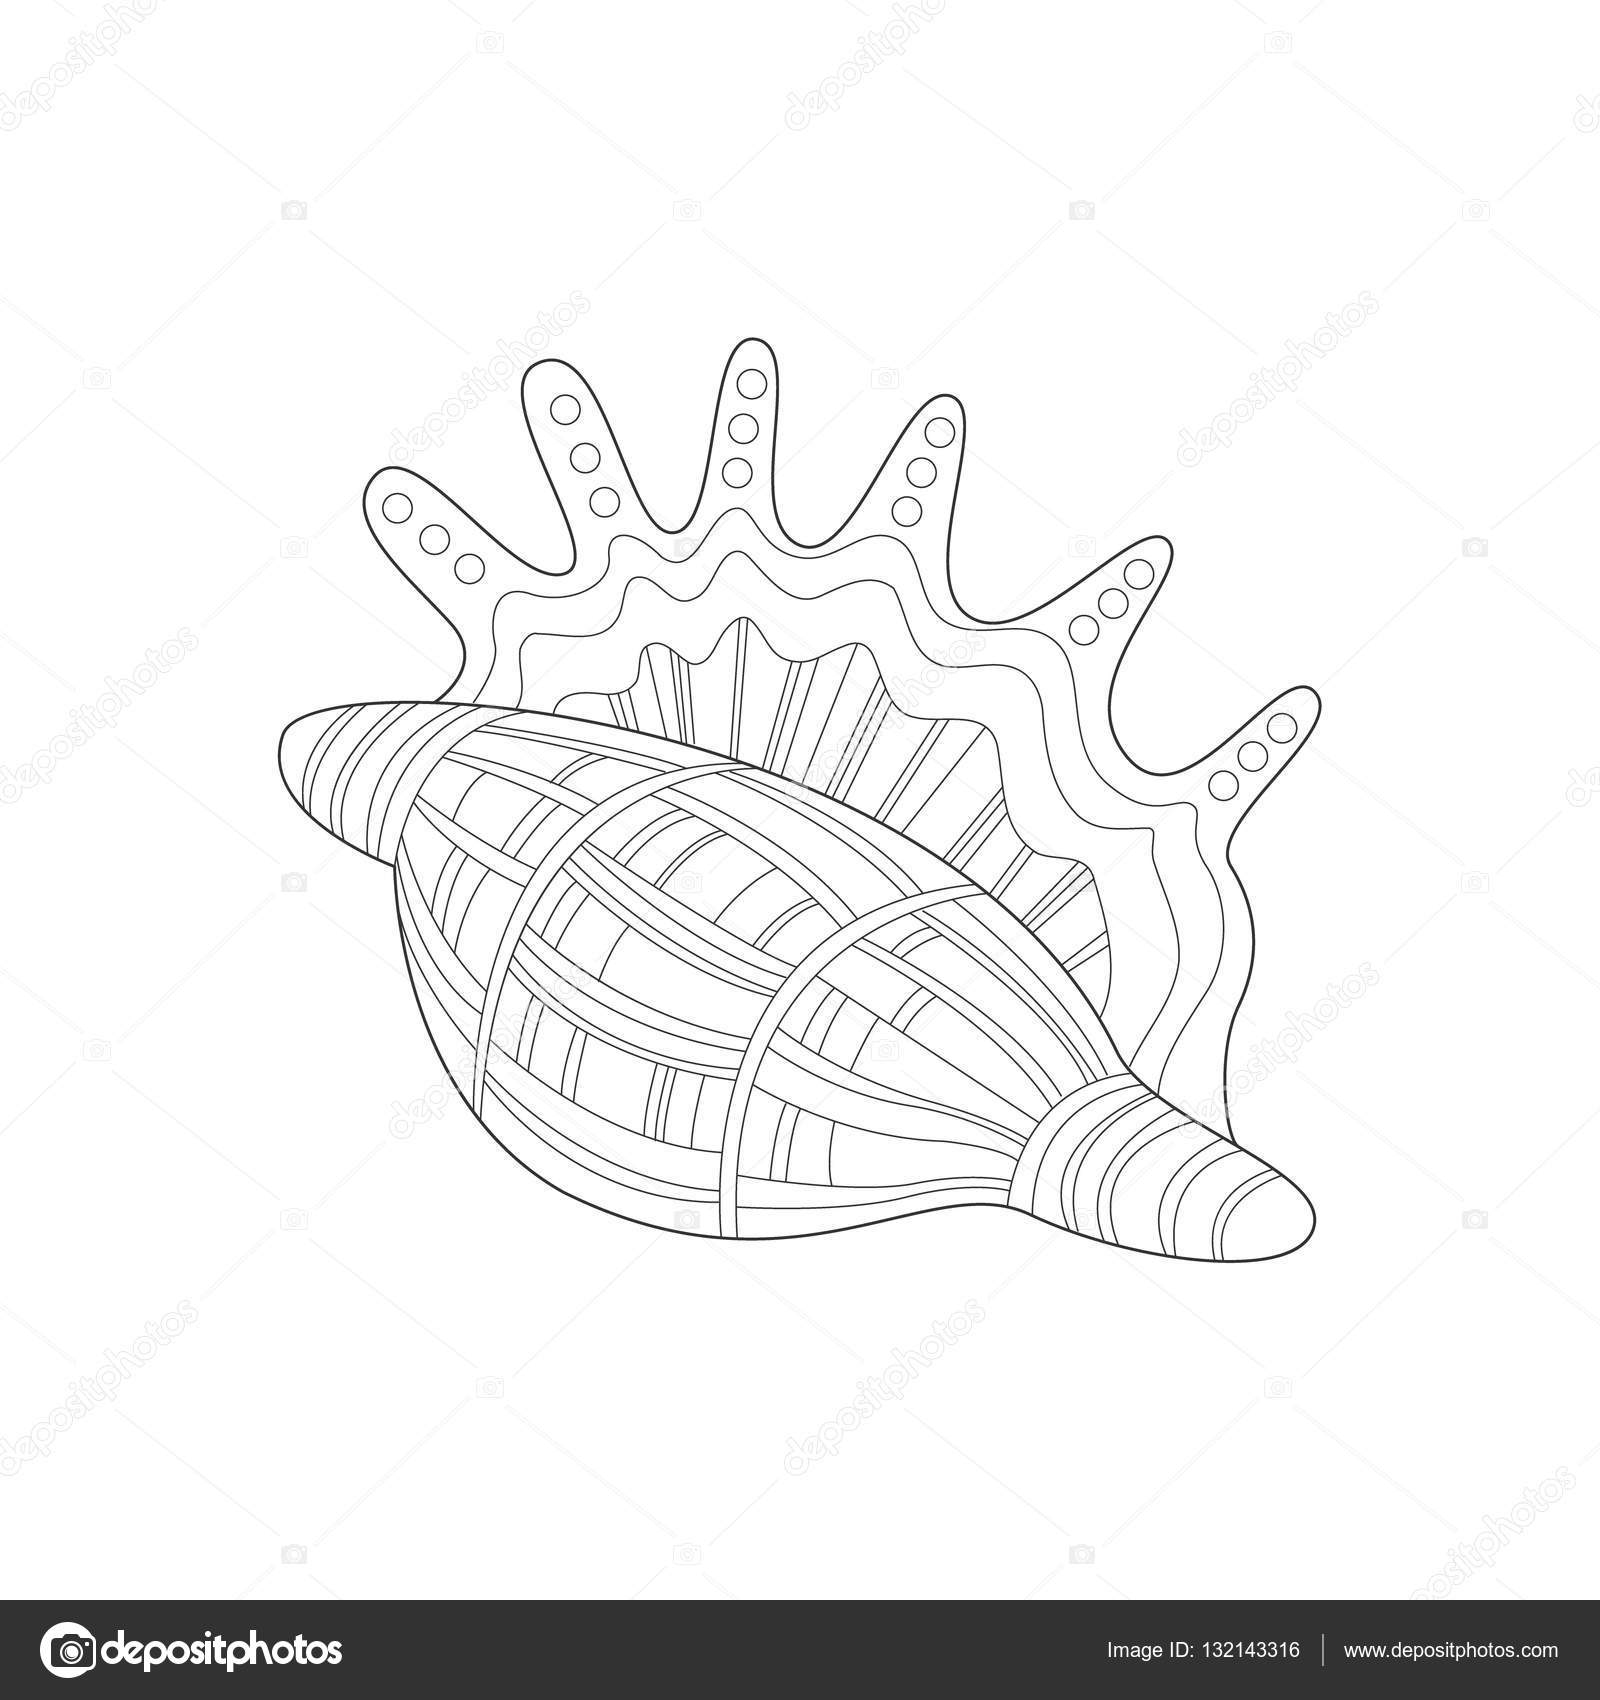 Lambis escargot coquille mer Nature sous marine adulte noir et blanc Zentangle Illustration du livre   colorier